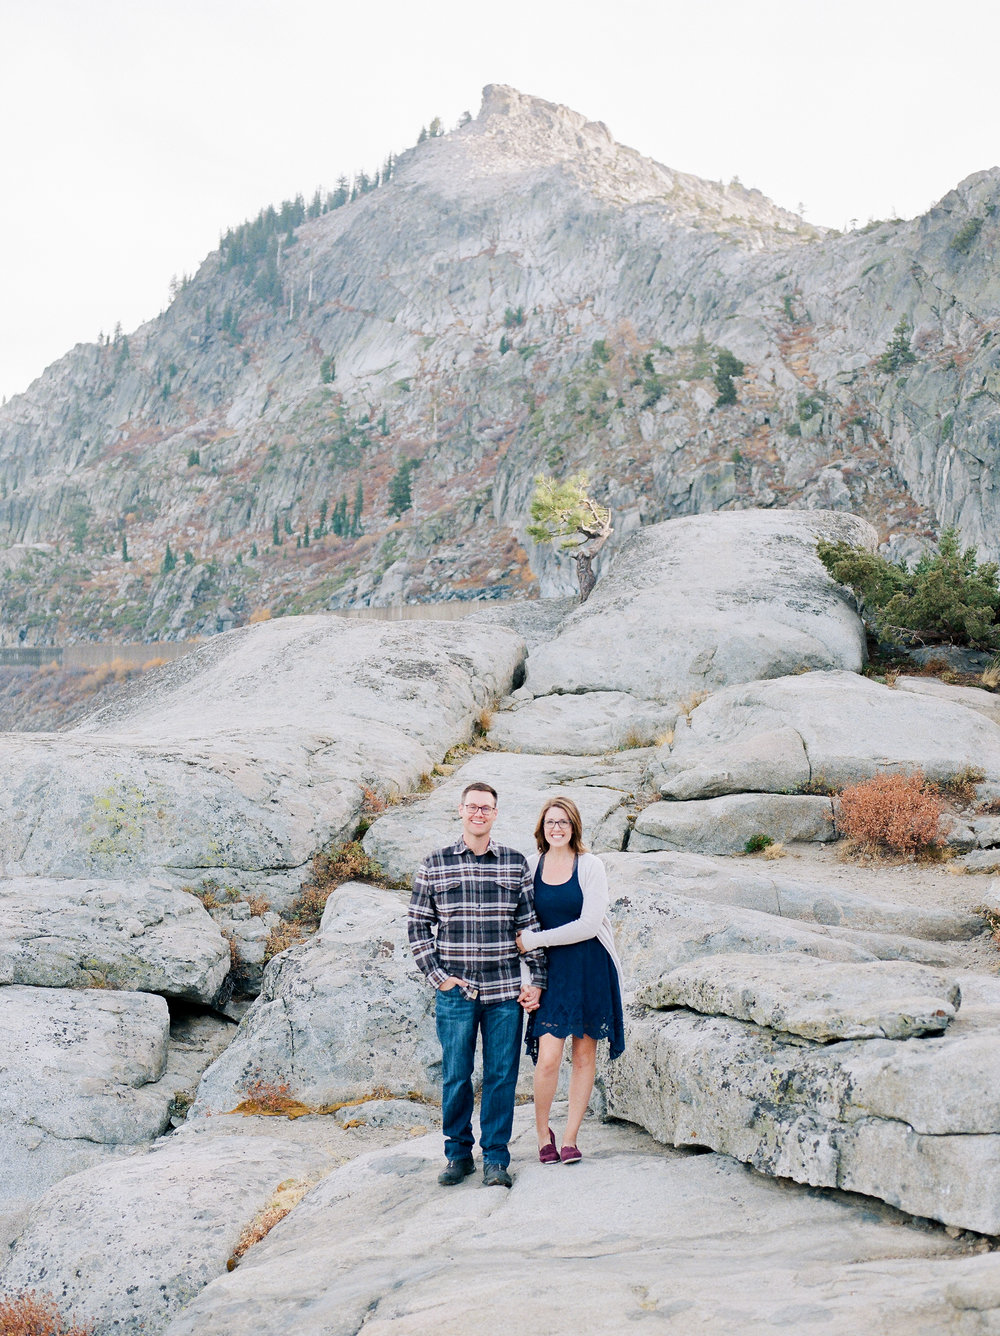 Donner-lake-adventure-photographer-captures-couple-on-wedding-annviersary (31 of).jpg